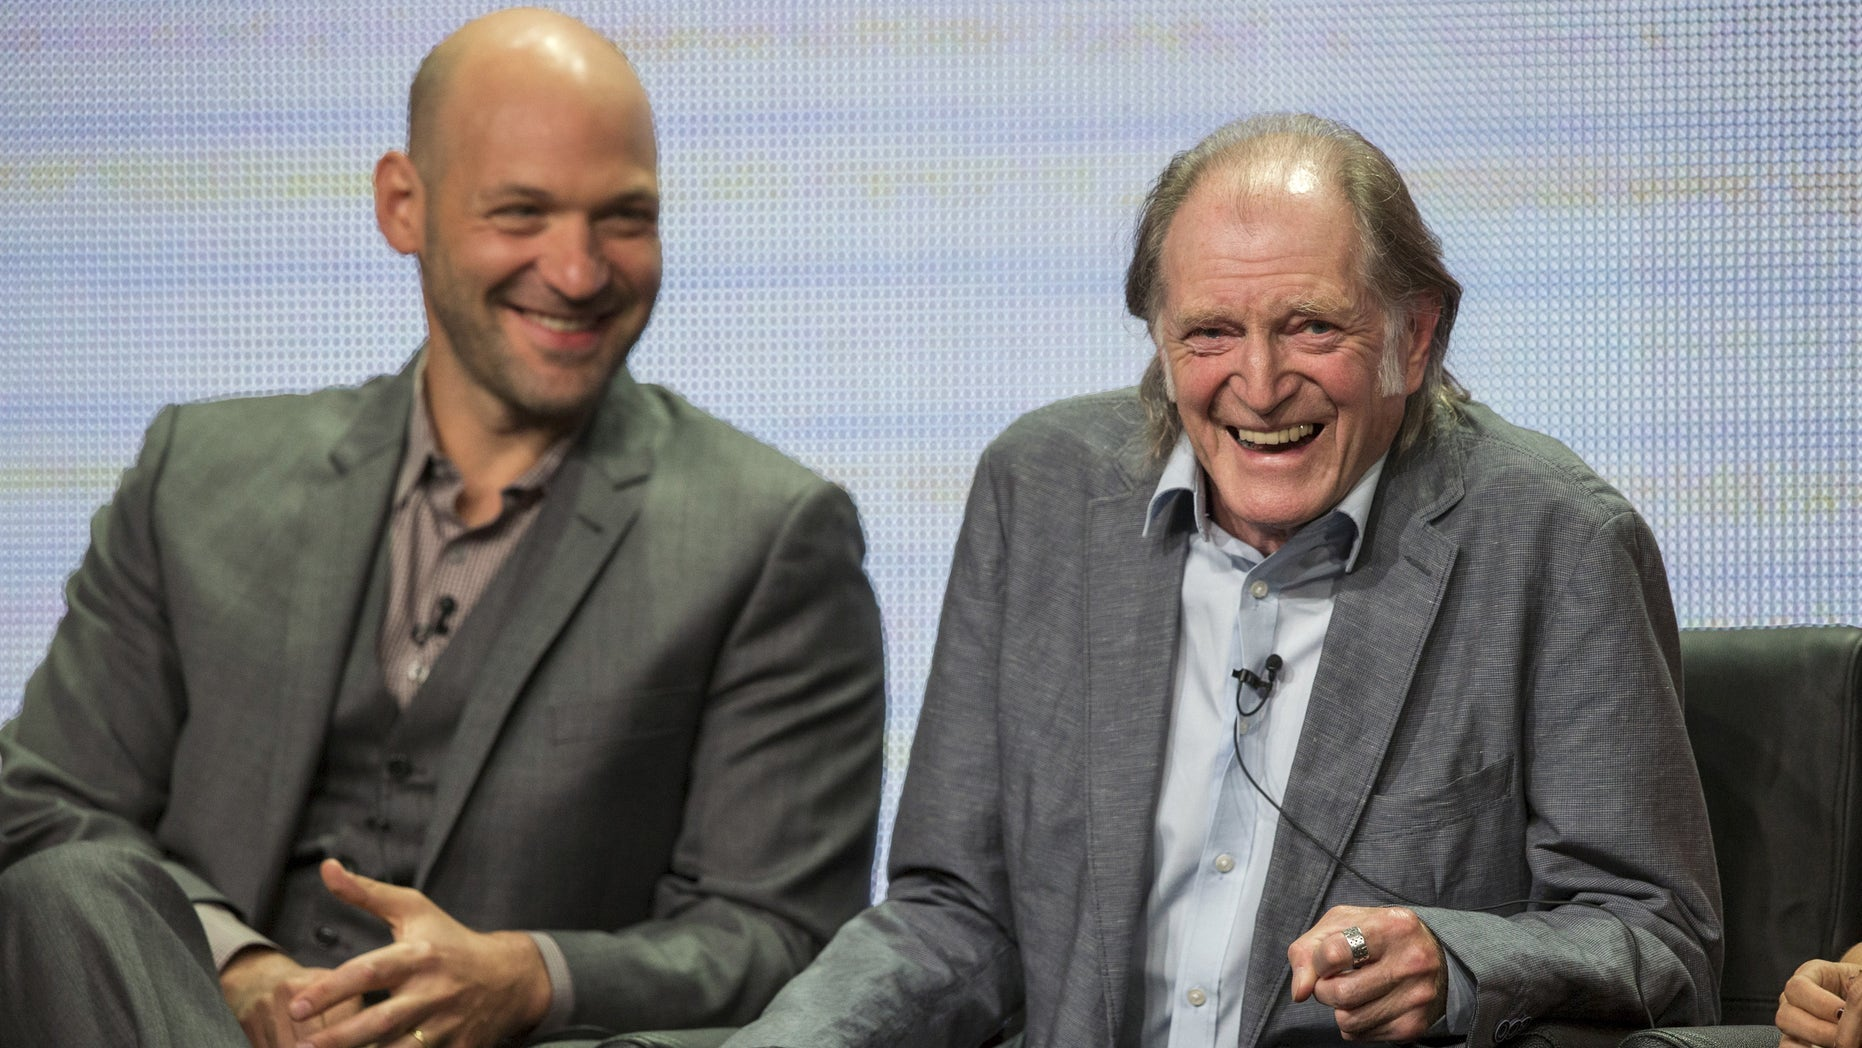 """Cast members David Bradley (R) and Corey Stoll laugh during a panel for the FX Networks television series """"The Strain"""" during the Television Critics Association Cable Summer Press Tour in Beverly Hills, California August 7, 2015. REUTERS/Mario Anzuoni - RTX1NJ7Z"""